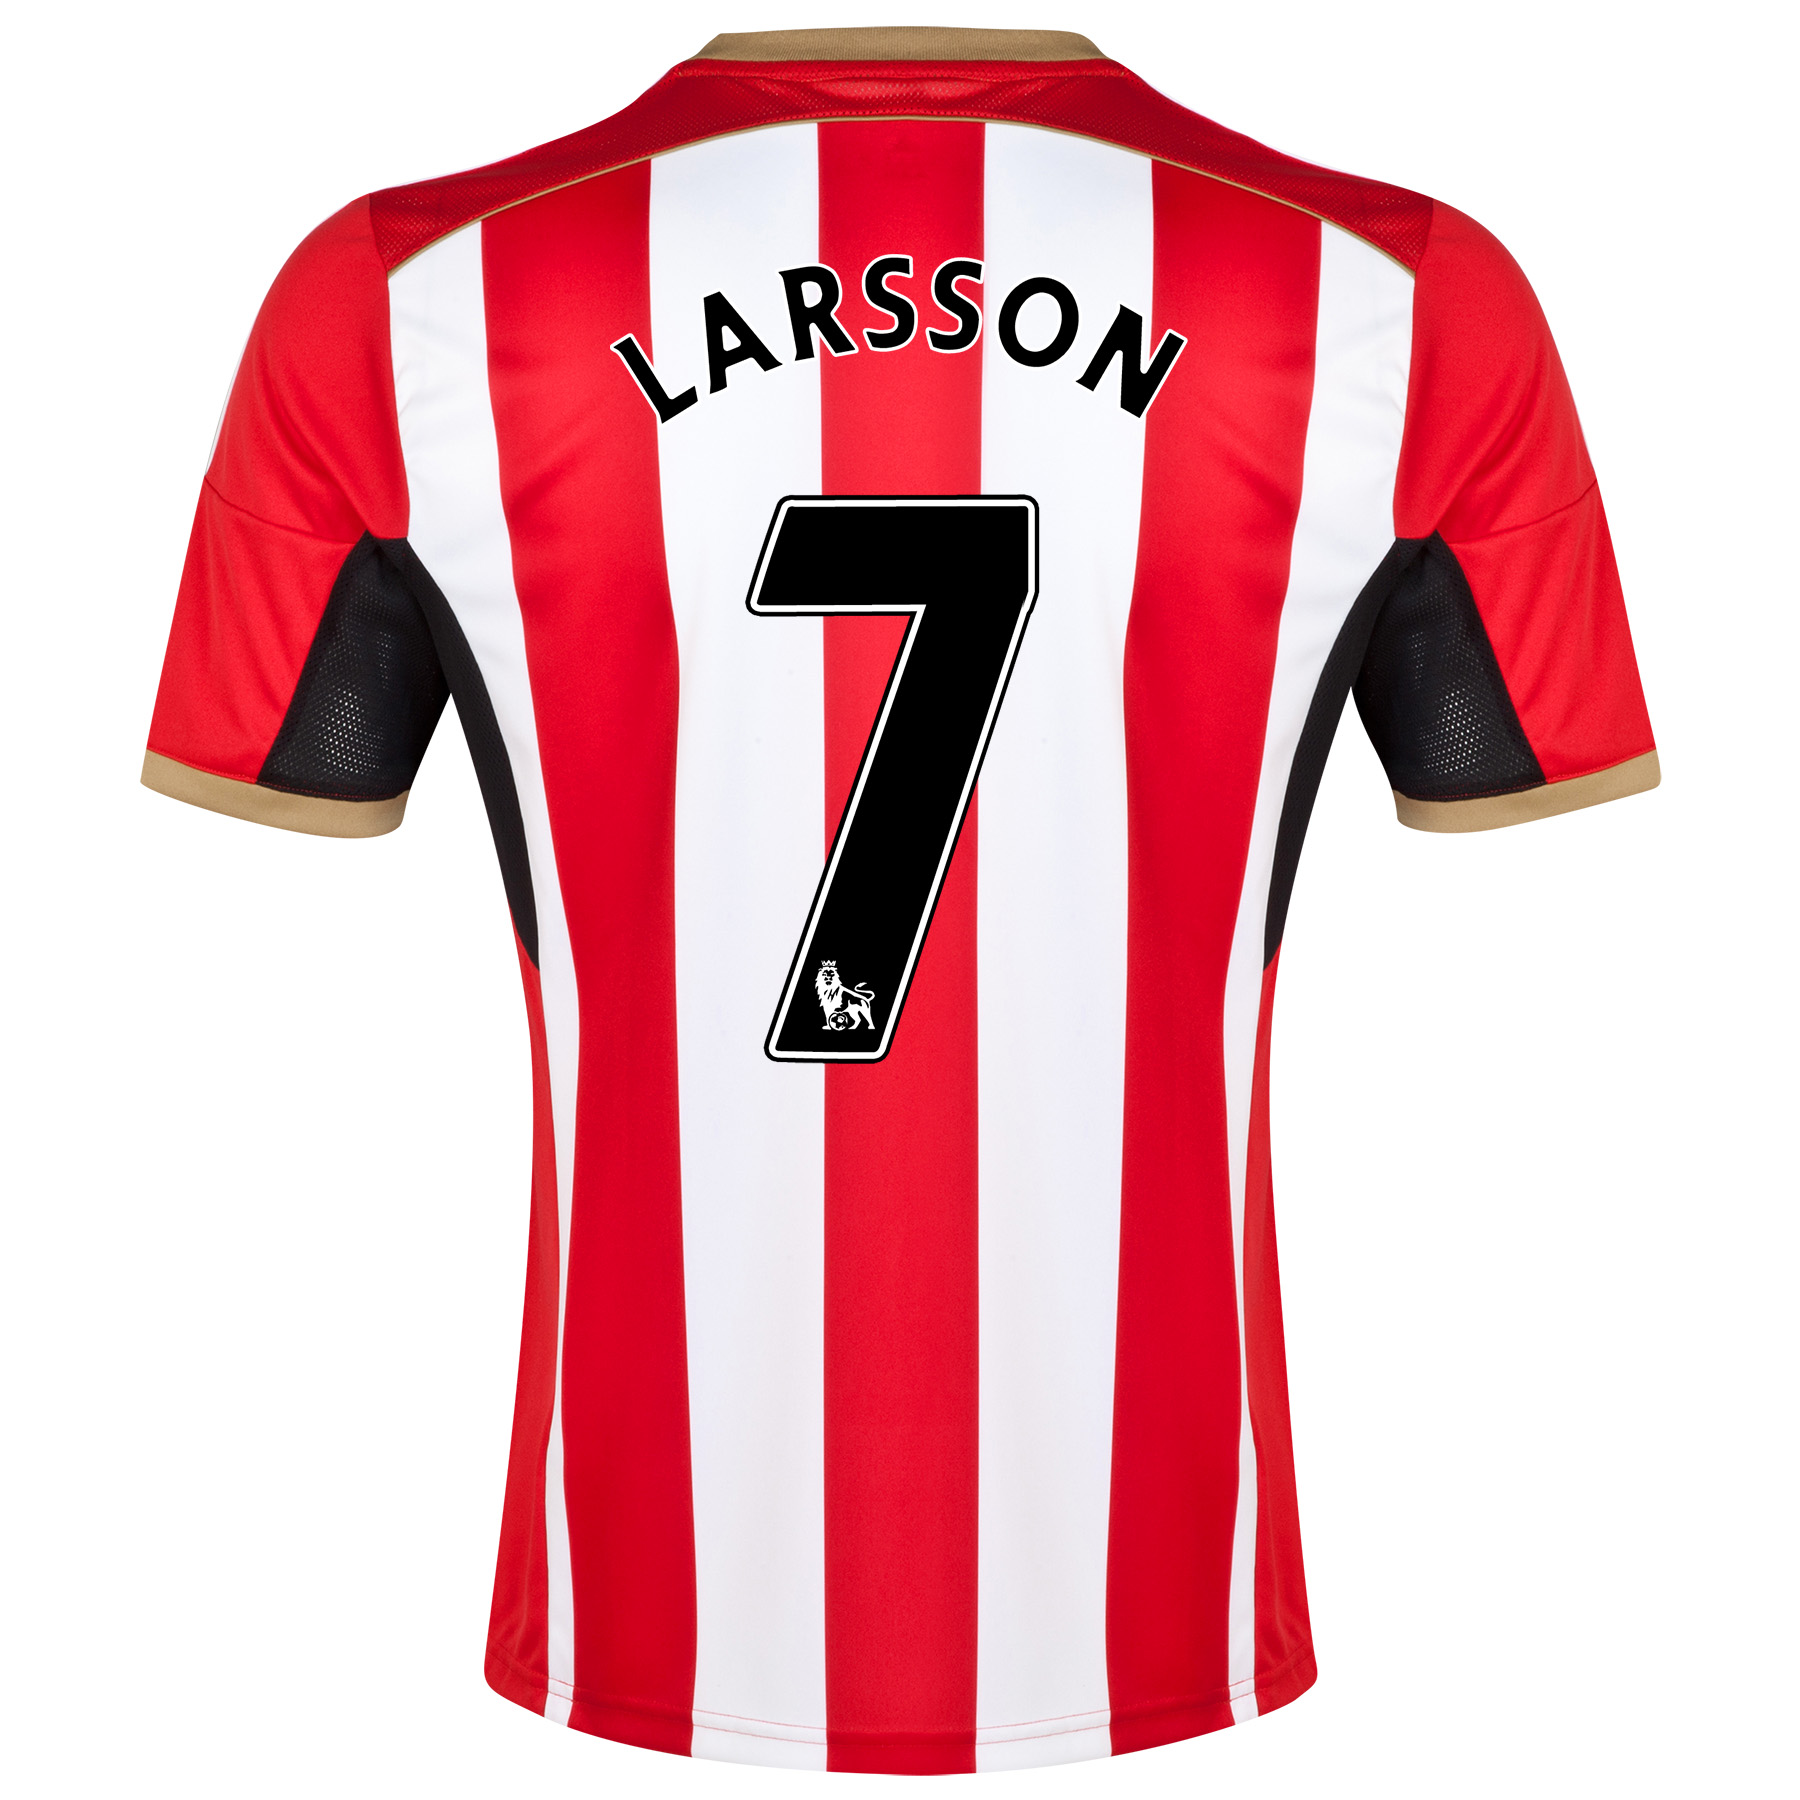 Sunderland Home Shirt 2014/15 Red with Larsson 7 printing